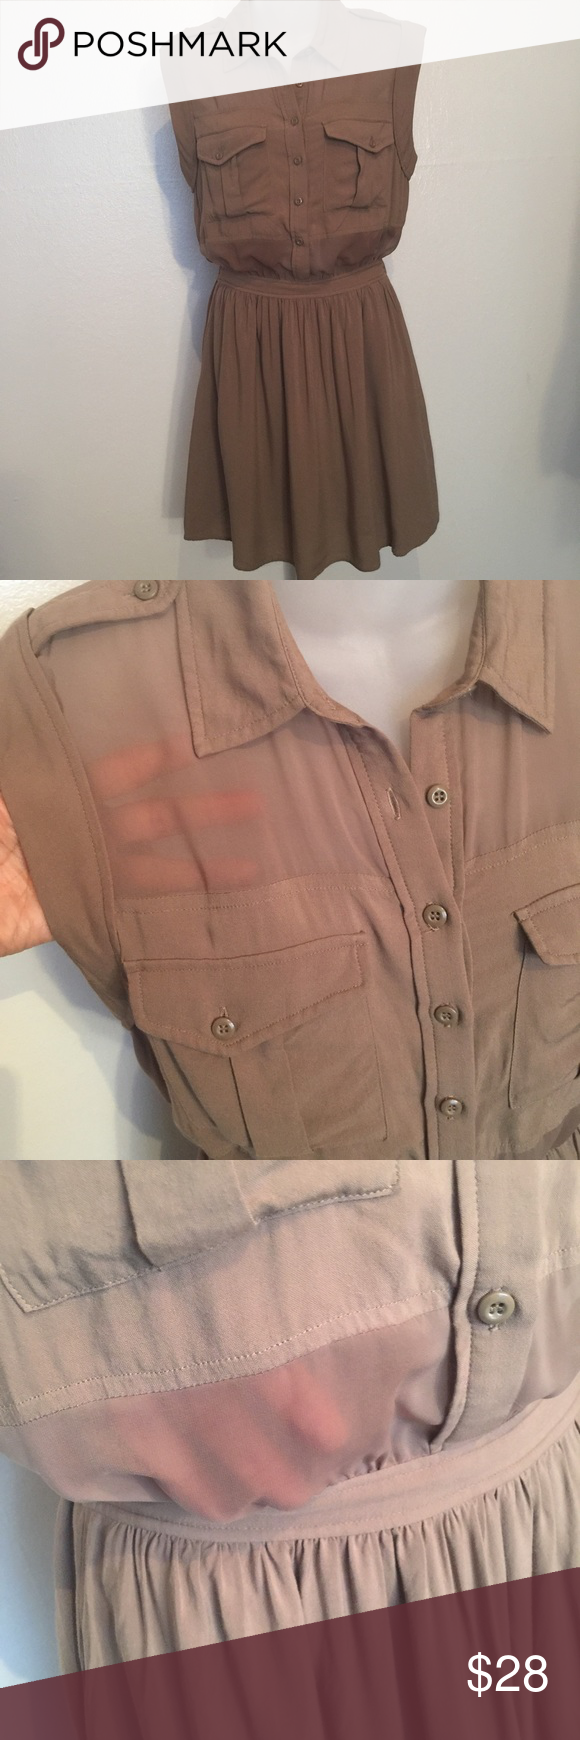 """BCBG Semi sheer dress Taupe color, 100% Rayon fabric, elastic waistband and side pockets. Dress is fully lined except above and below chest area where the fabric is semi- sheer. Great for summer!  Measures 18.5"""" flat from armpit to armpit, 18"""" from shoulder to waist and 19"""" from waist to hem.       (Item 242) BCBGeneration Dresses"""